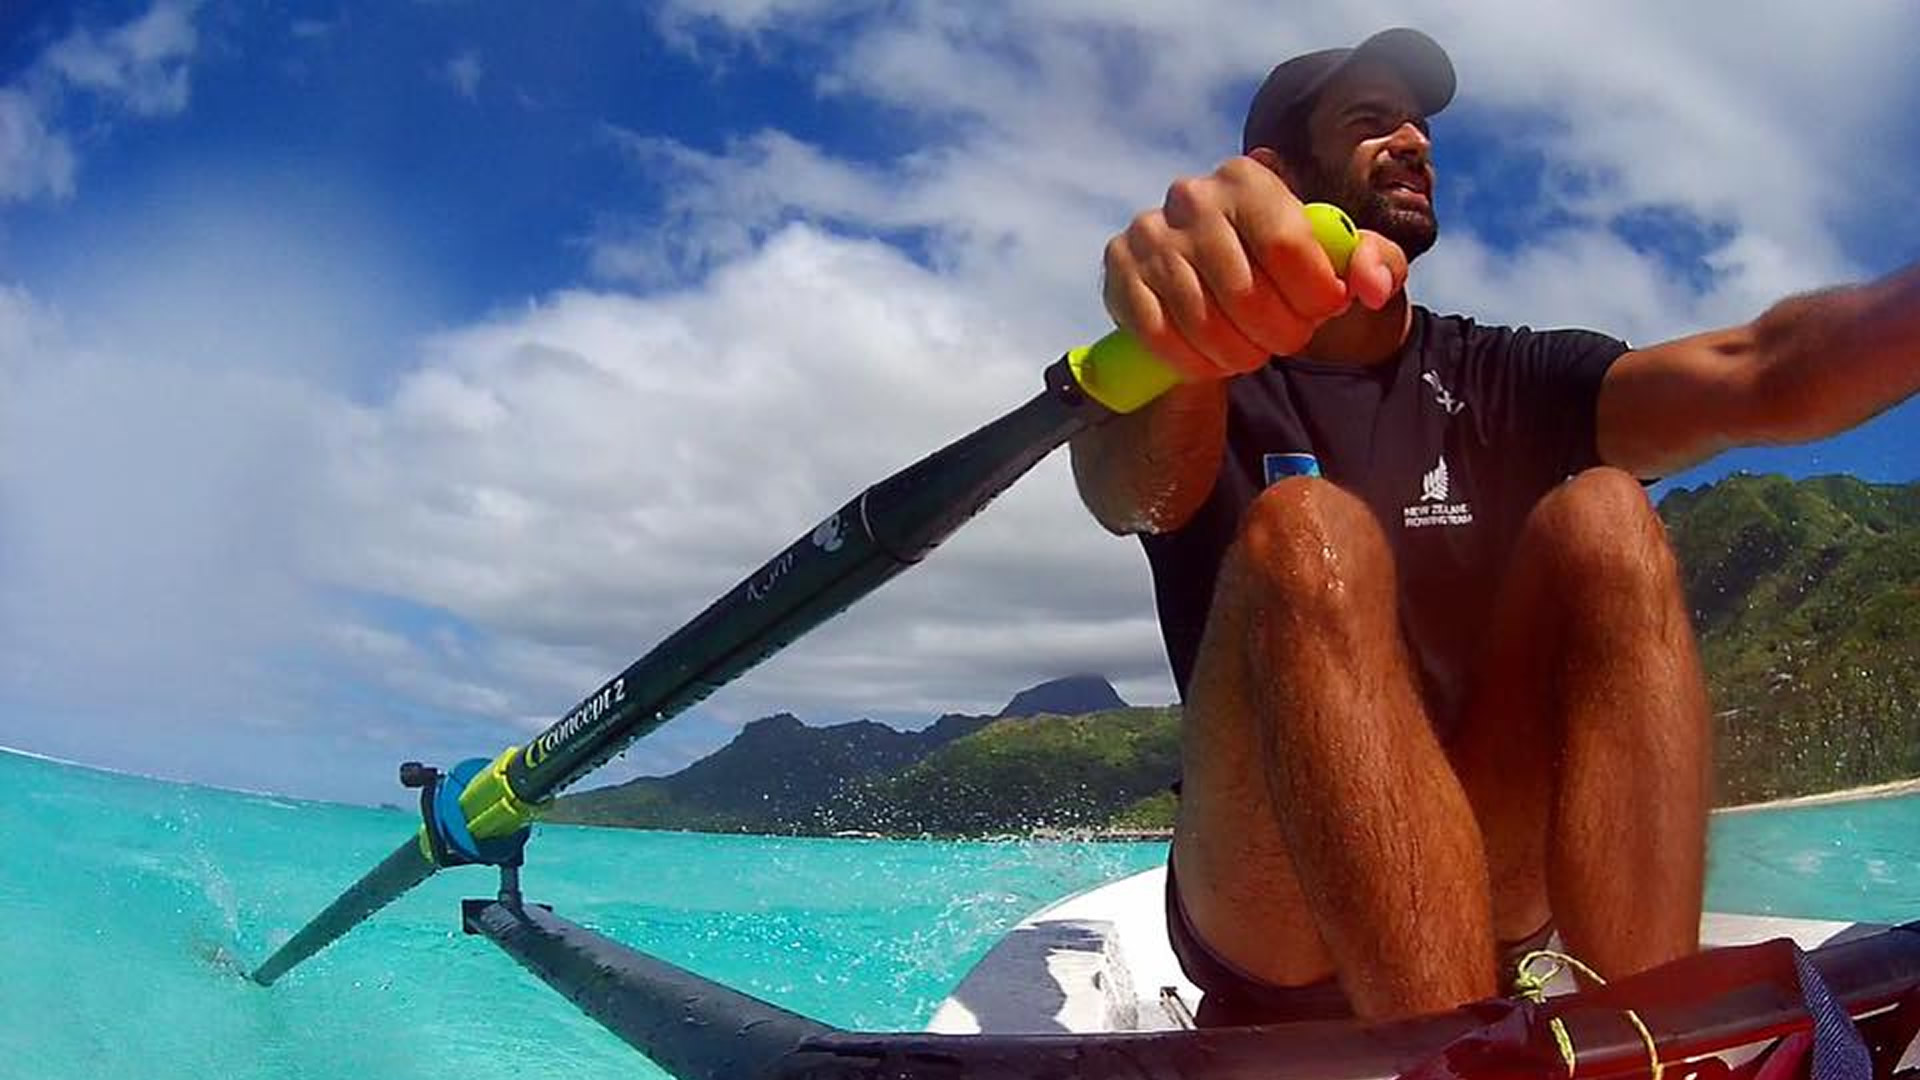 oar-board-rower-paddle-board-sup-i-want-to-row-tahiti-fitness-adventure-whitehall-rowing-and-sail-2b